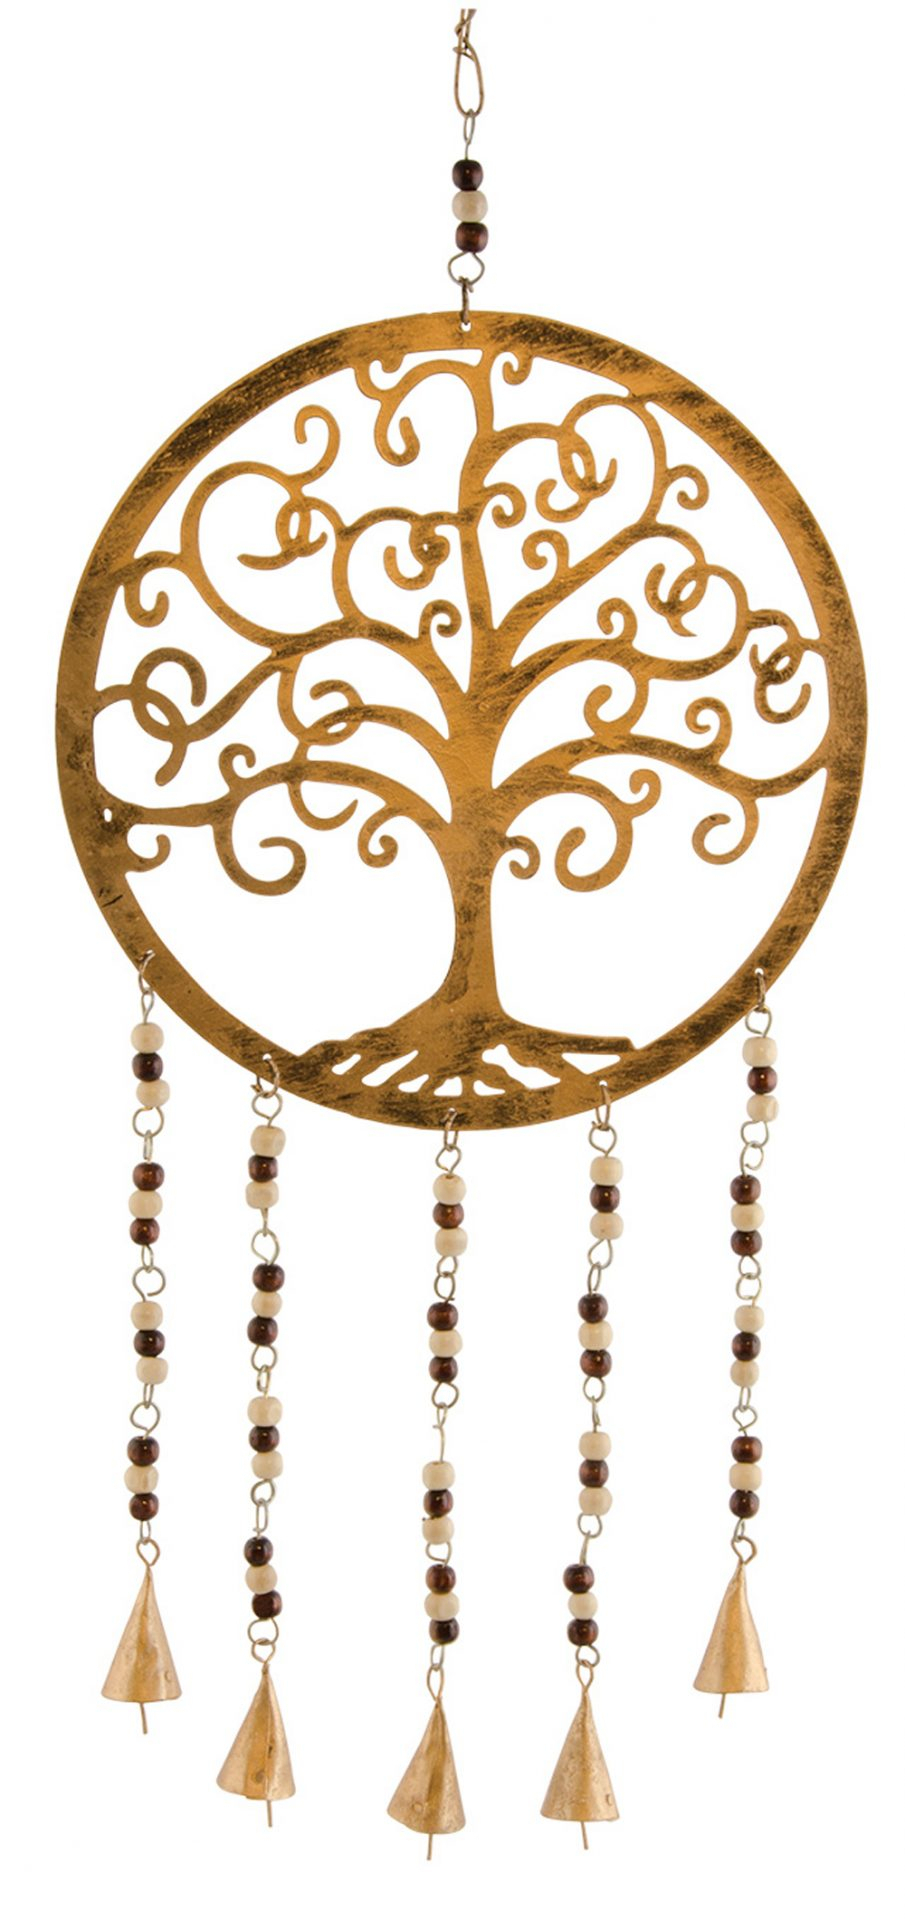 Tree Of Life Windchime With Wooden Beads And Bells Within Most Popular Blended Fabric Pastel Tree Of Life Wall Hangings (View 15 of 20)